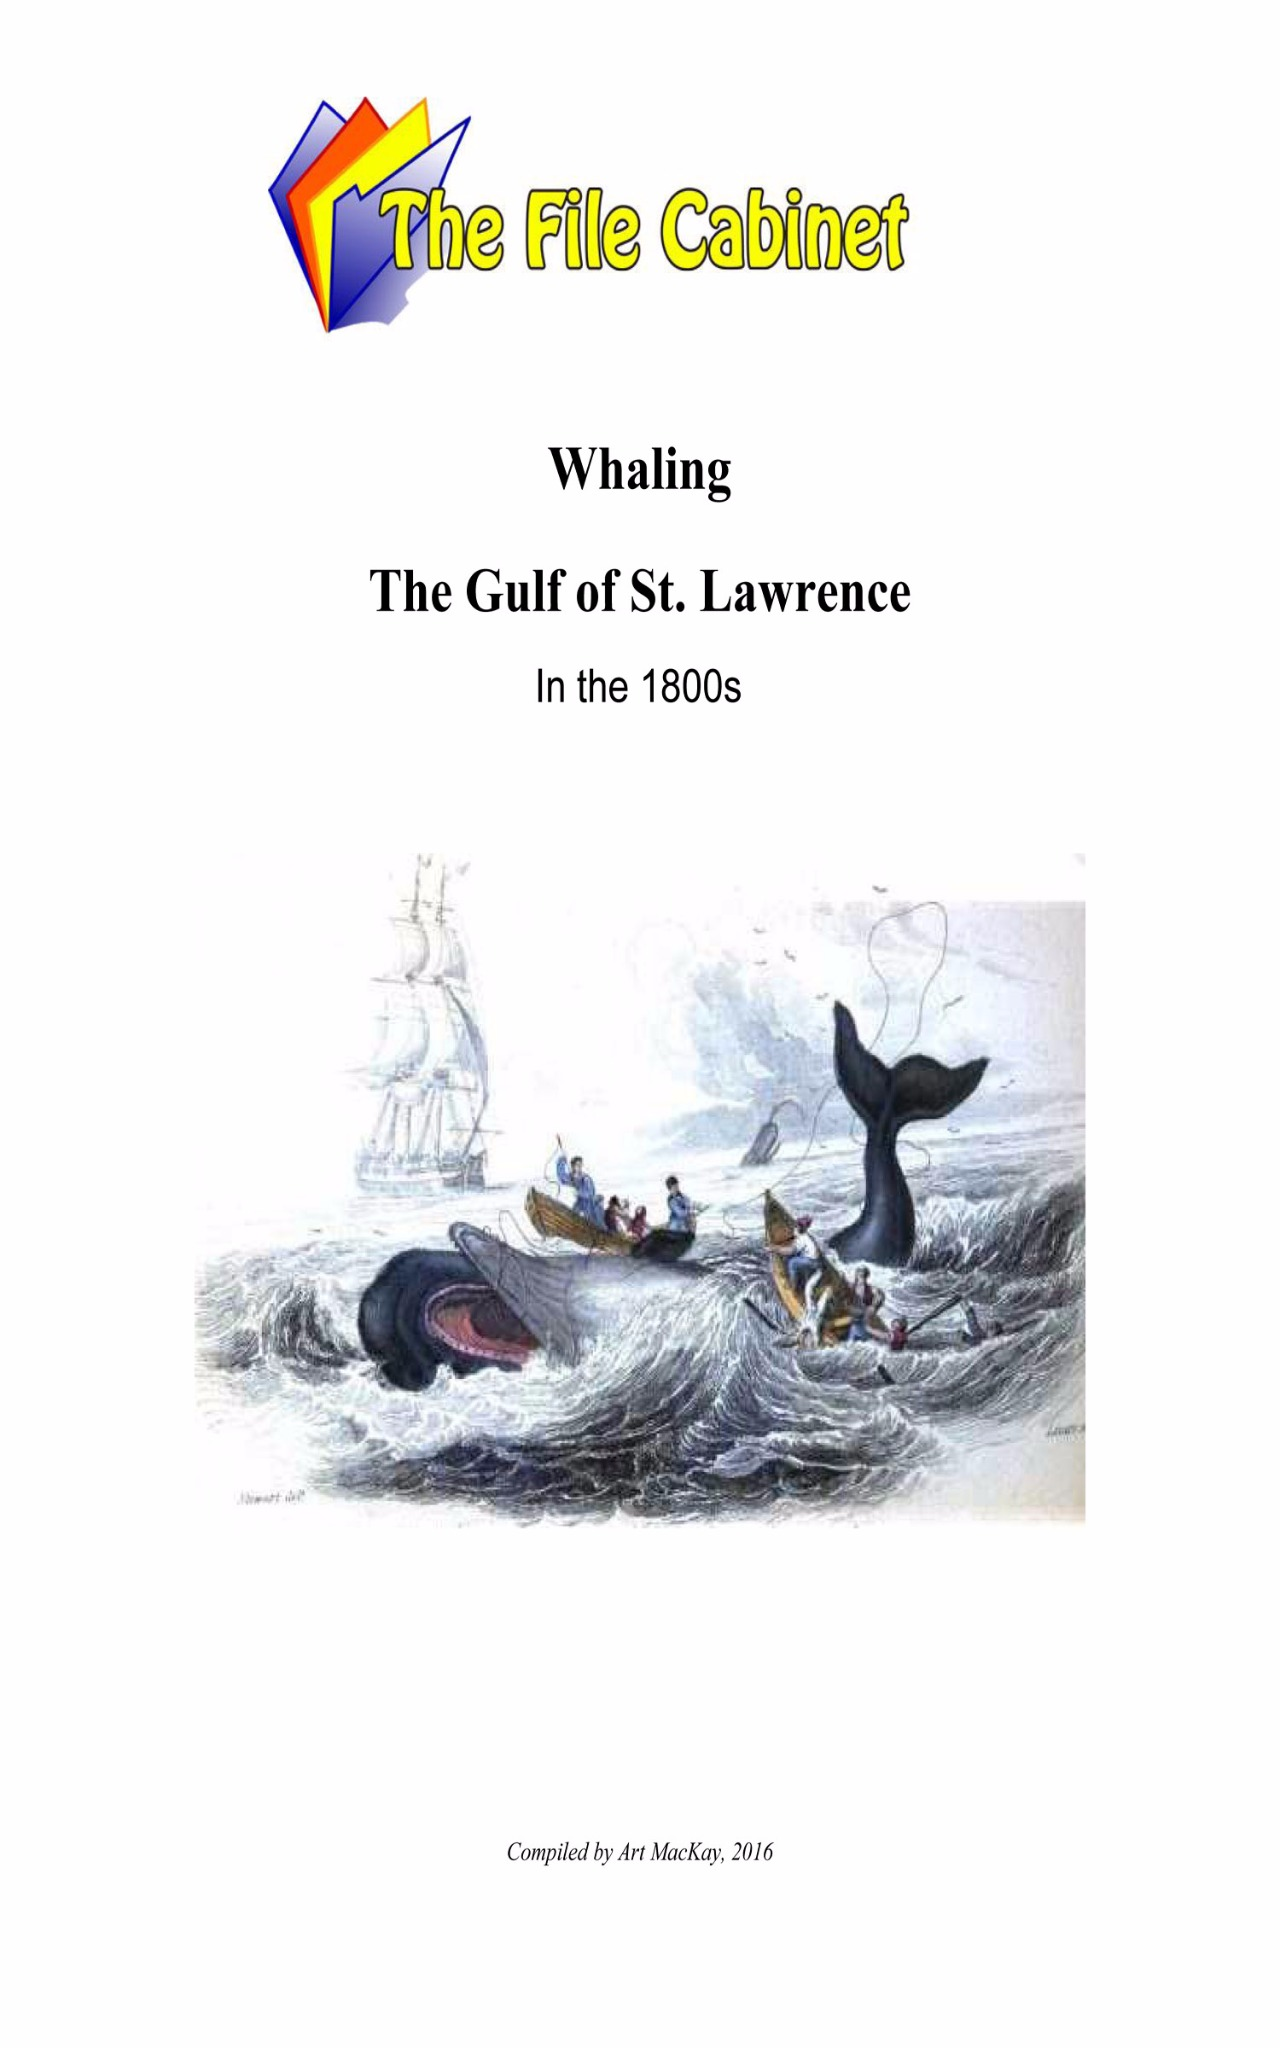 article: Whaling in the Gulf of St. Lawrence in the 1800s